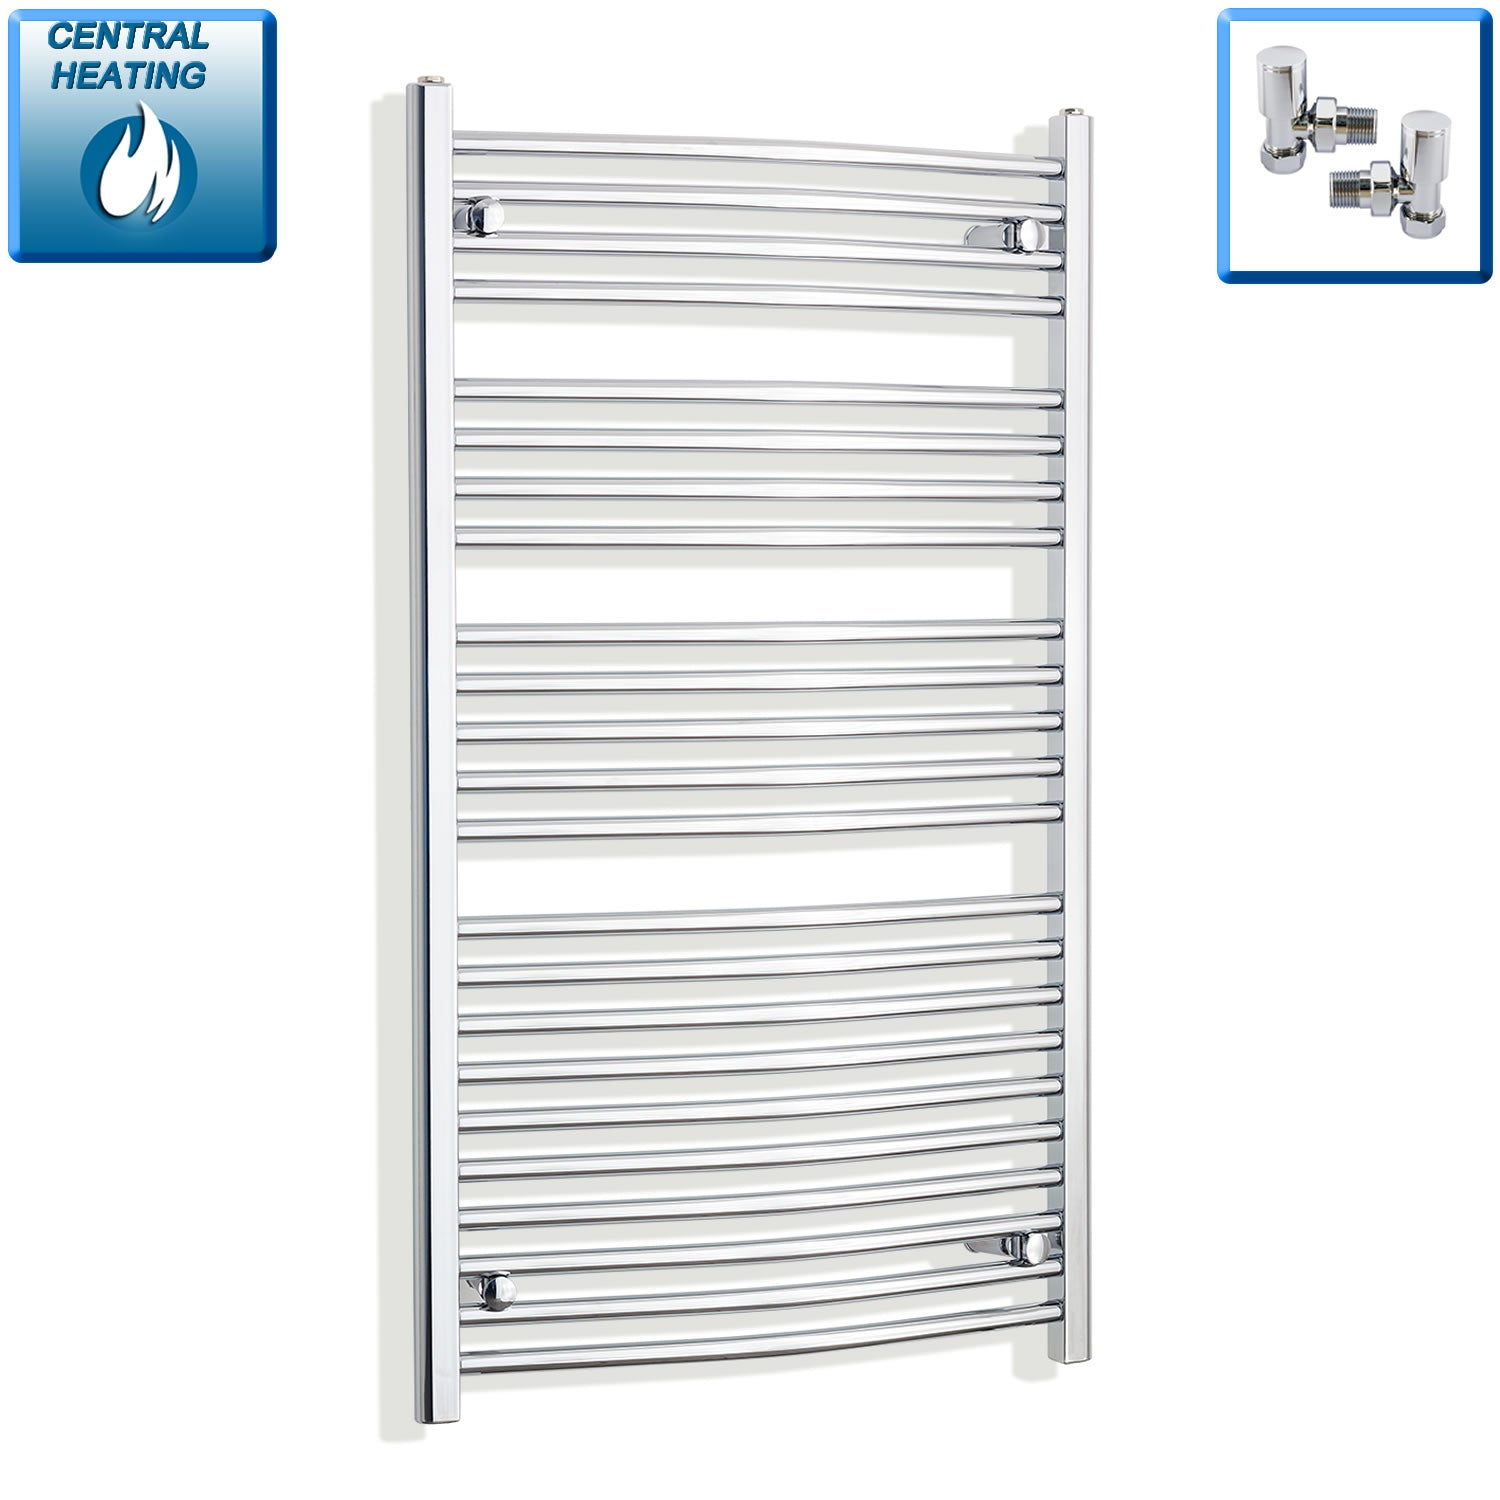 700mm x 1200mm High Curved Chrome Towel Rail Radiator With Angled Valve